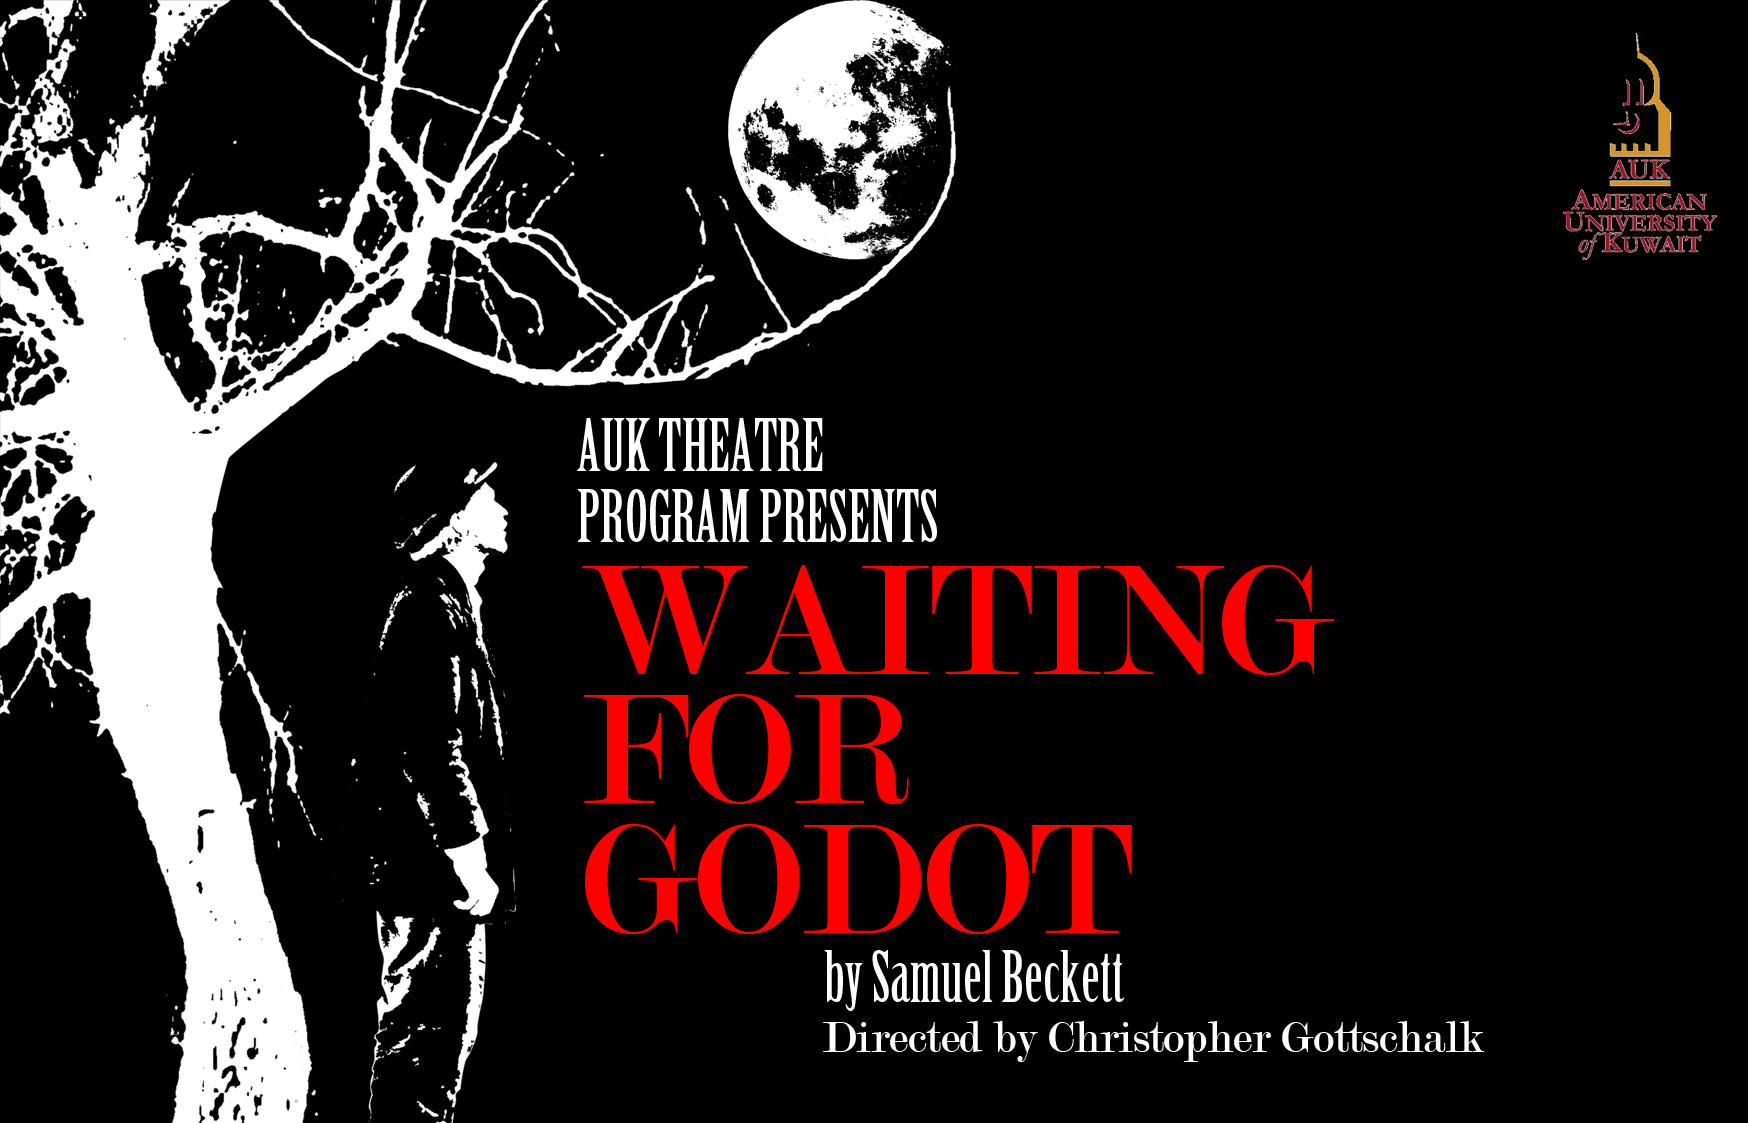 an analysis of the play waiting for godot by samuel beckett